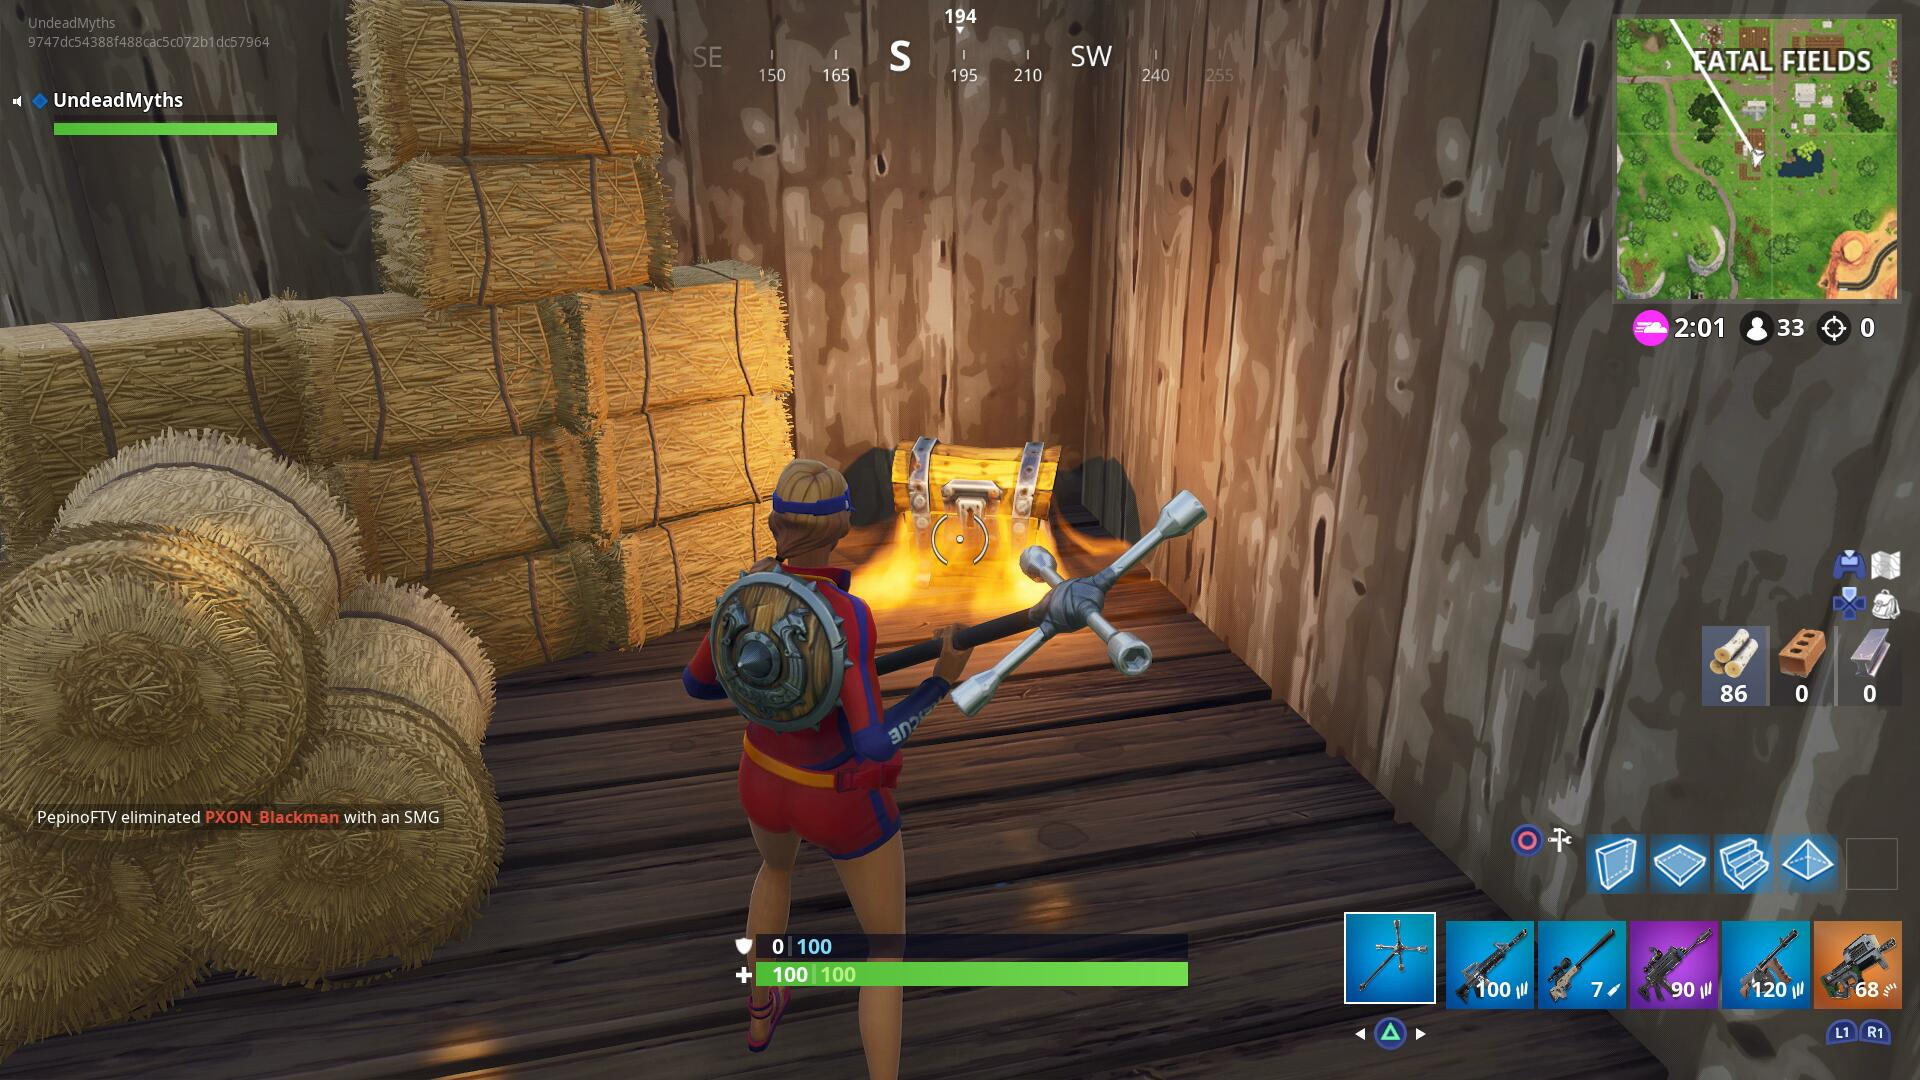 Fortnite Fatal Fields Chest Locations - How to Search Chests in Fatal Fields, Week 3 Challenge